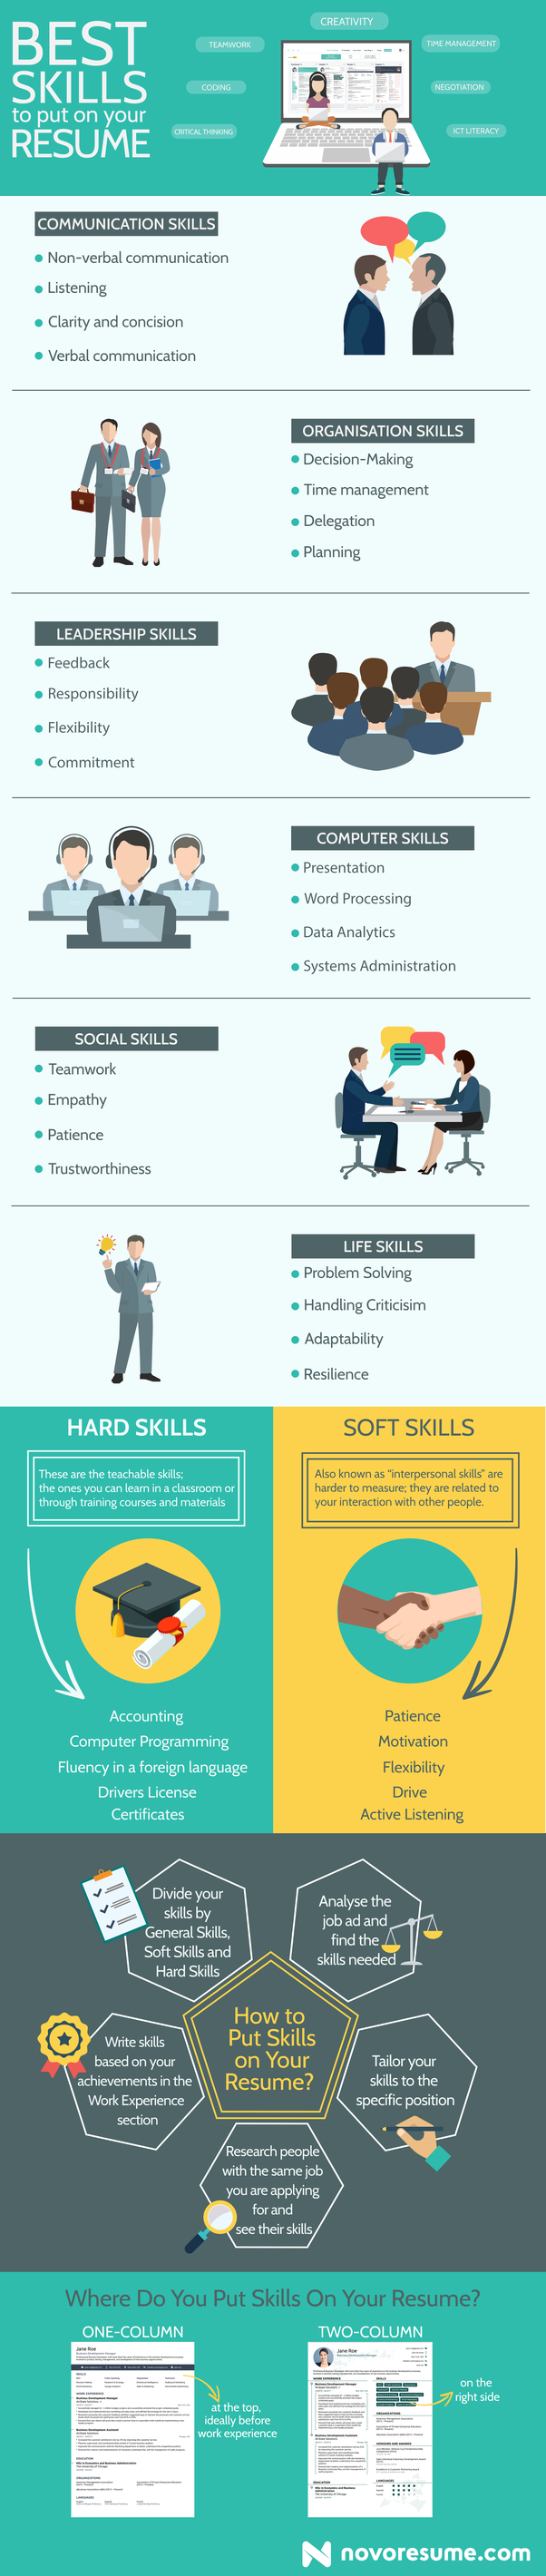 What are examples of skills people write on their resume? - Quora